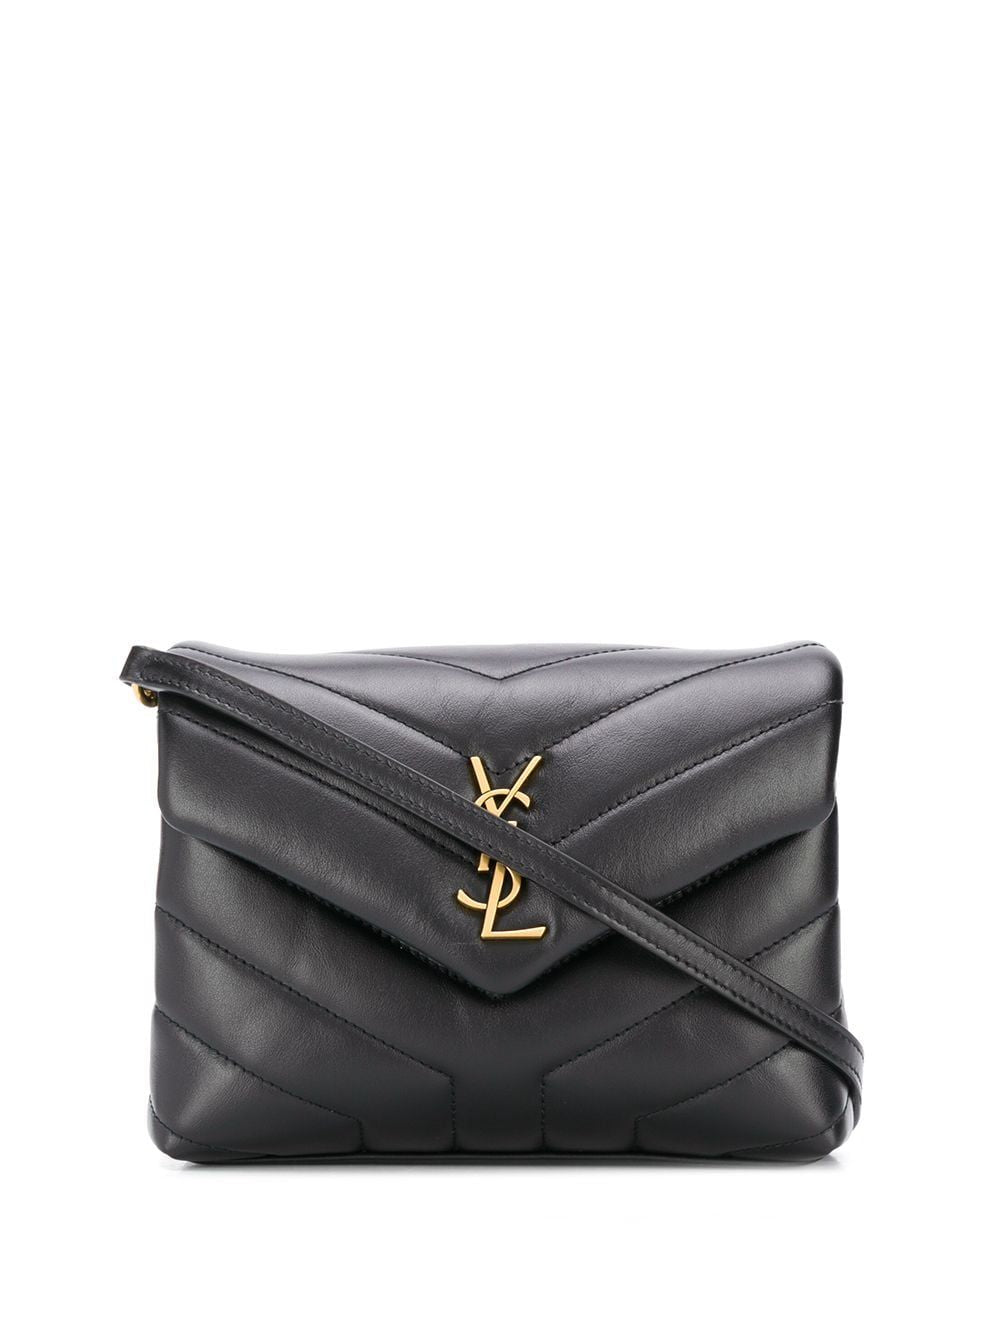 SAINT LAURENT mini Loulou crossbody bag